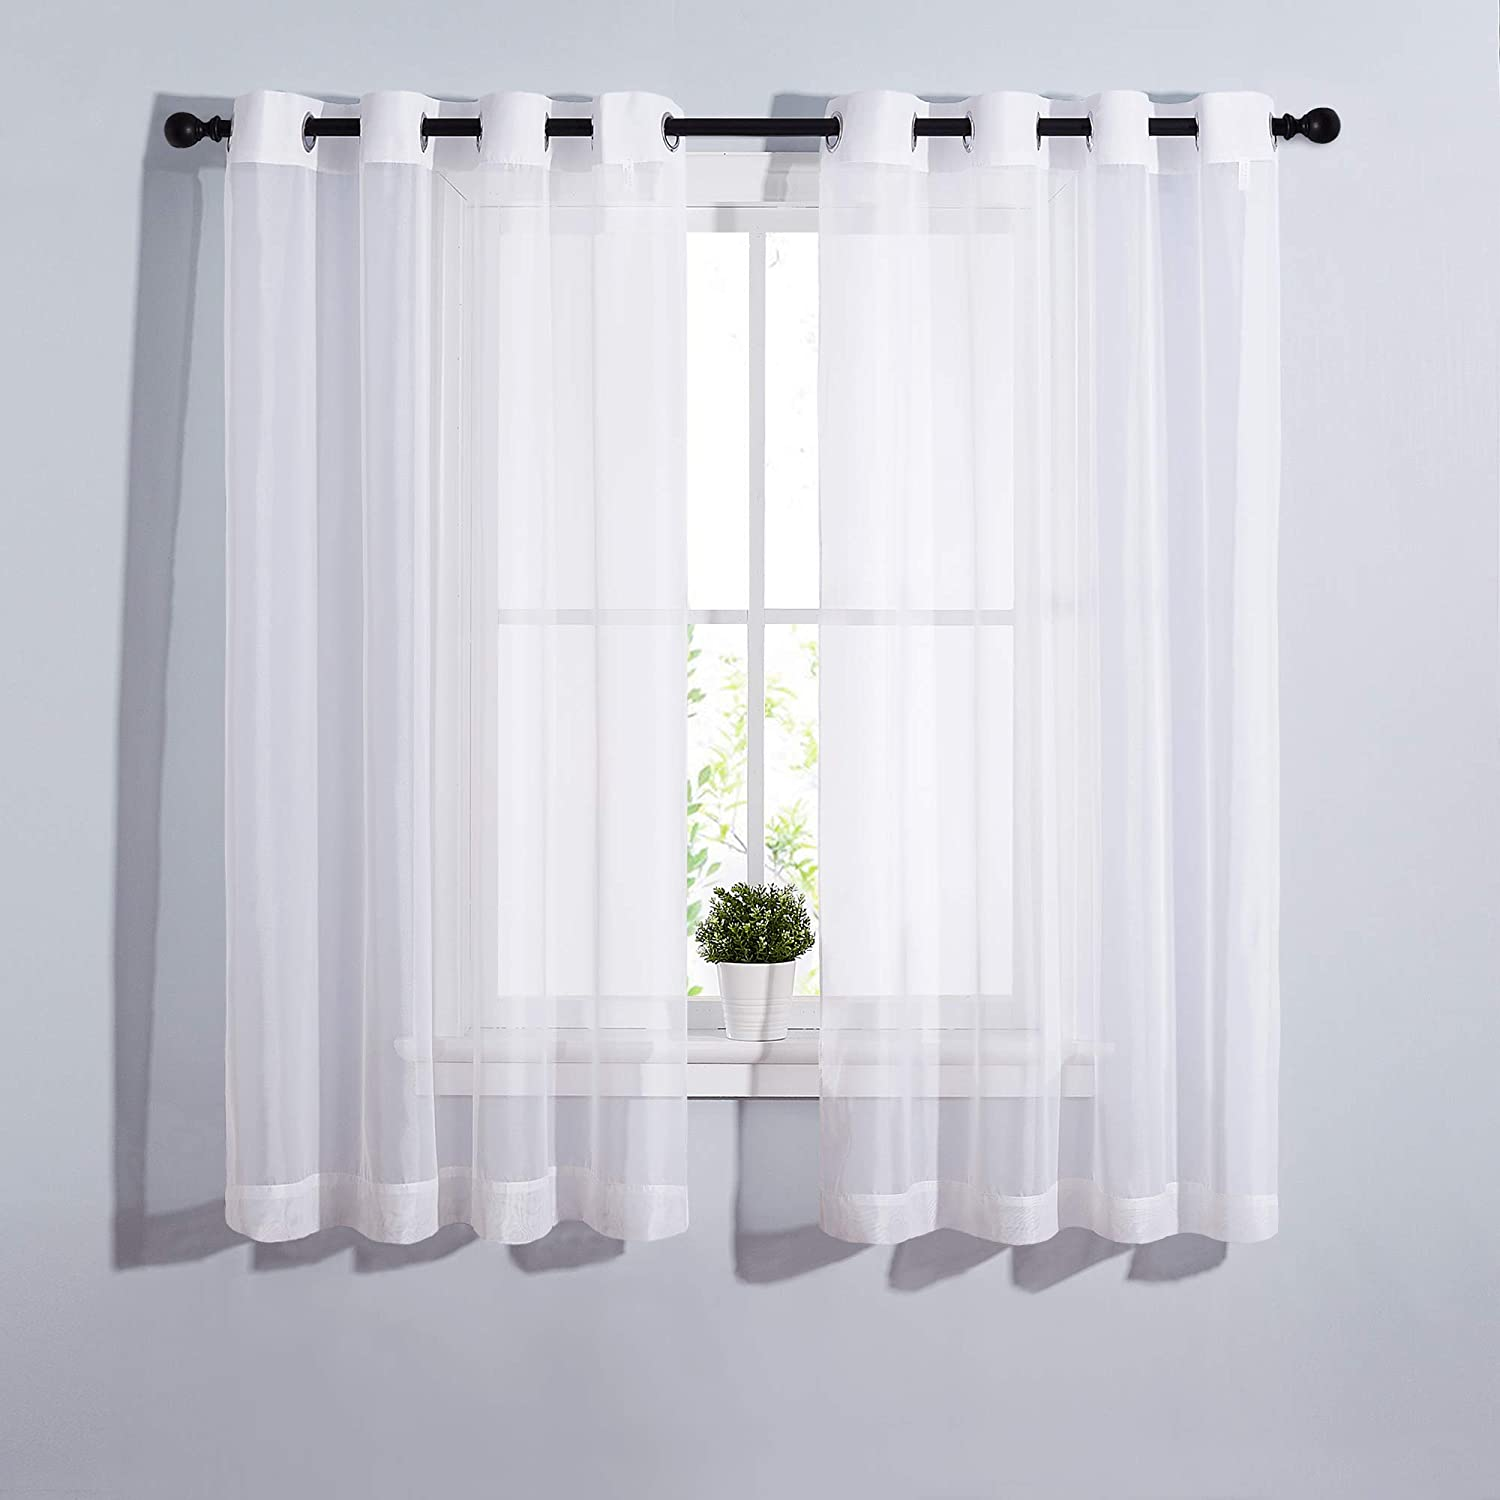 NICETOWN Sheer Window Panel Curtains - Grommet Top Gauzy Sheer Drapes Lightweight Breathable Panels for Windows (2-Pack, 54 Wide x 63 inch Long, White)